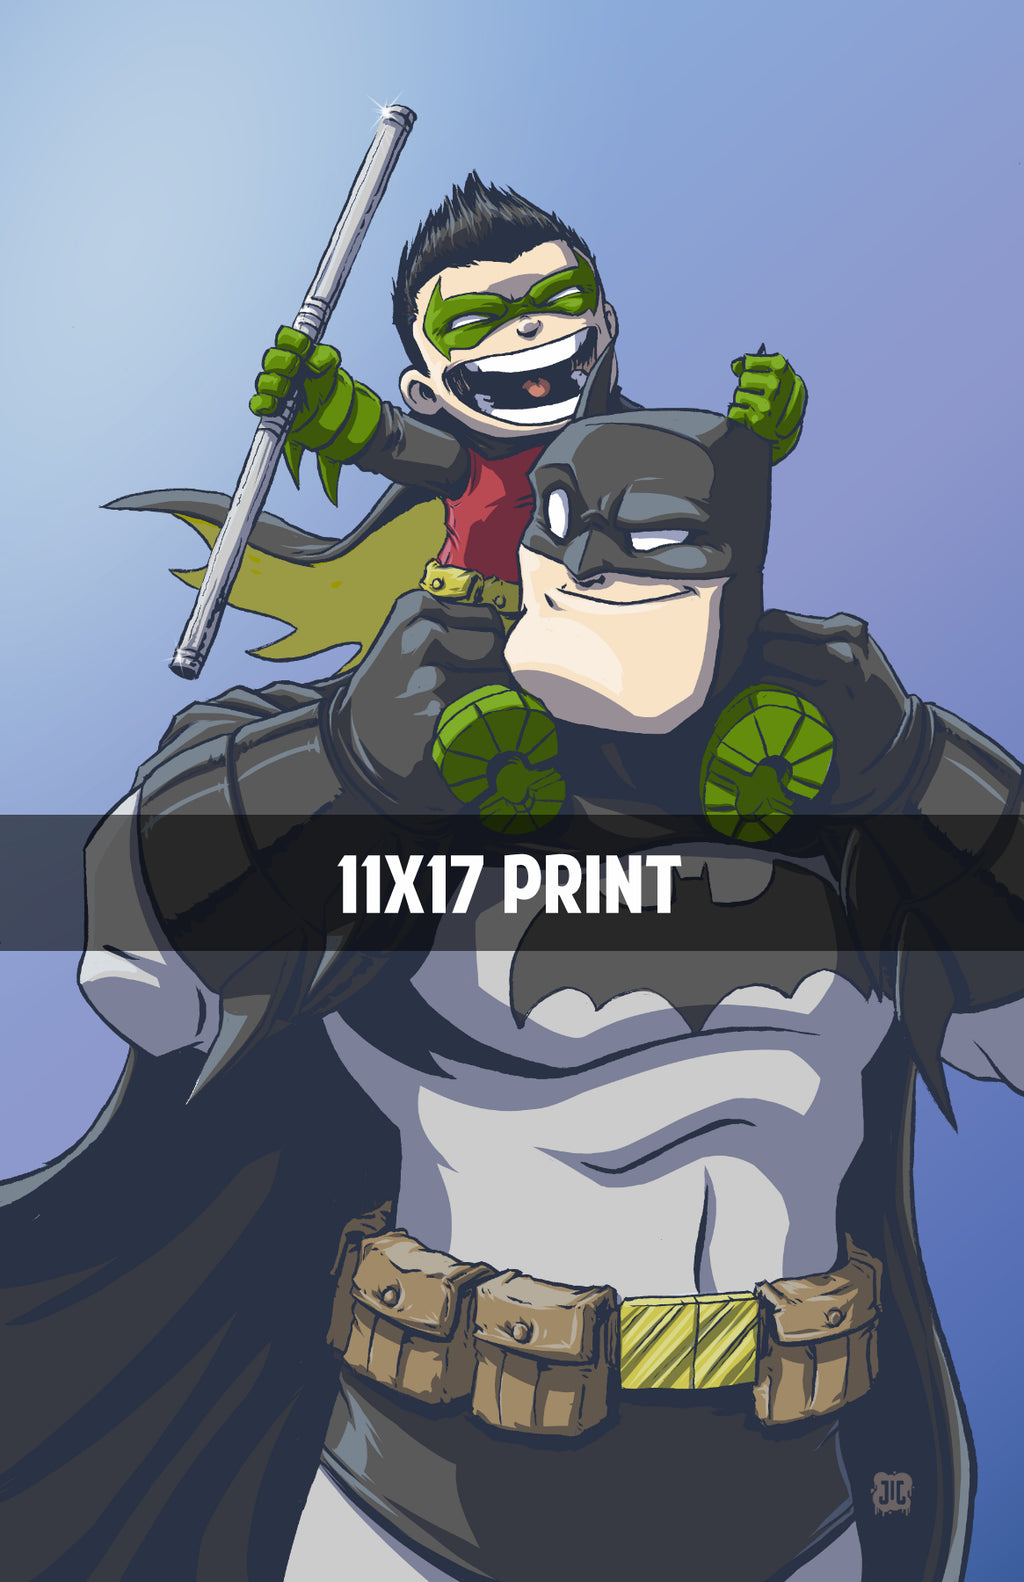 Batman and Robin - 11x17 Print